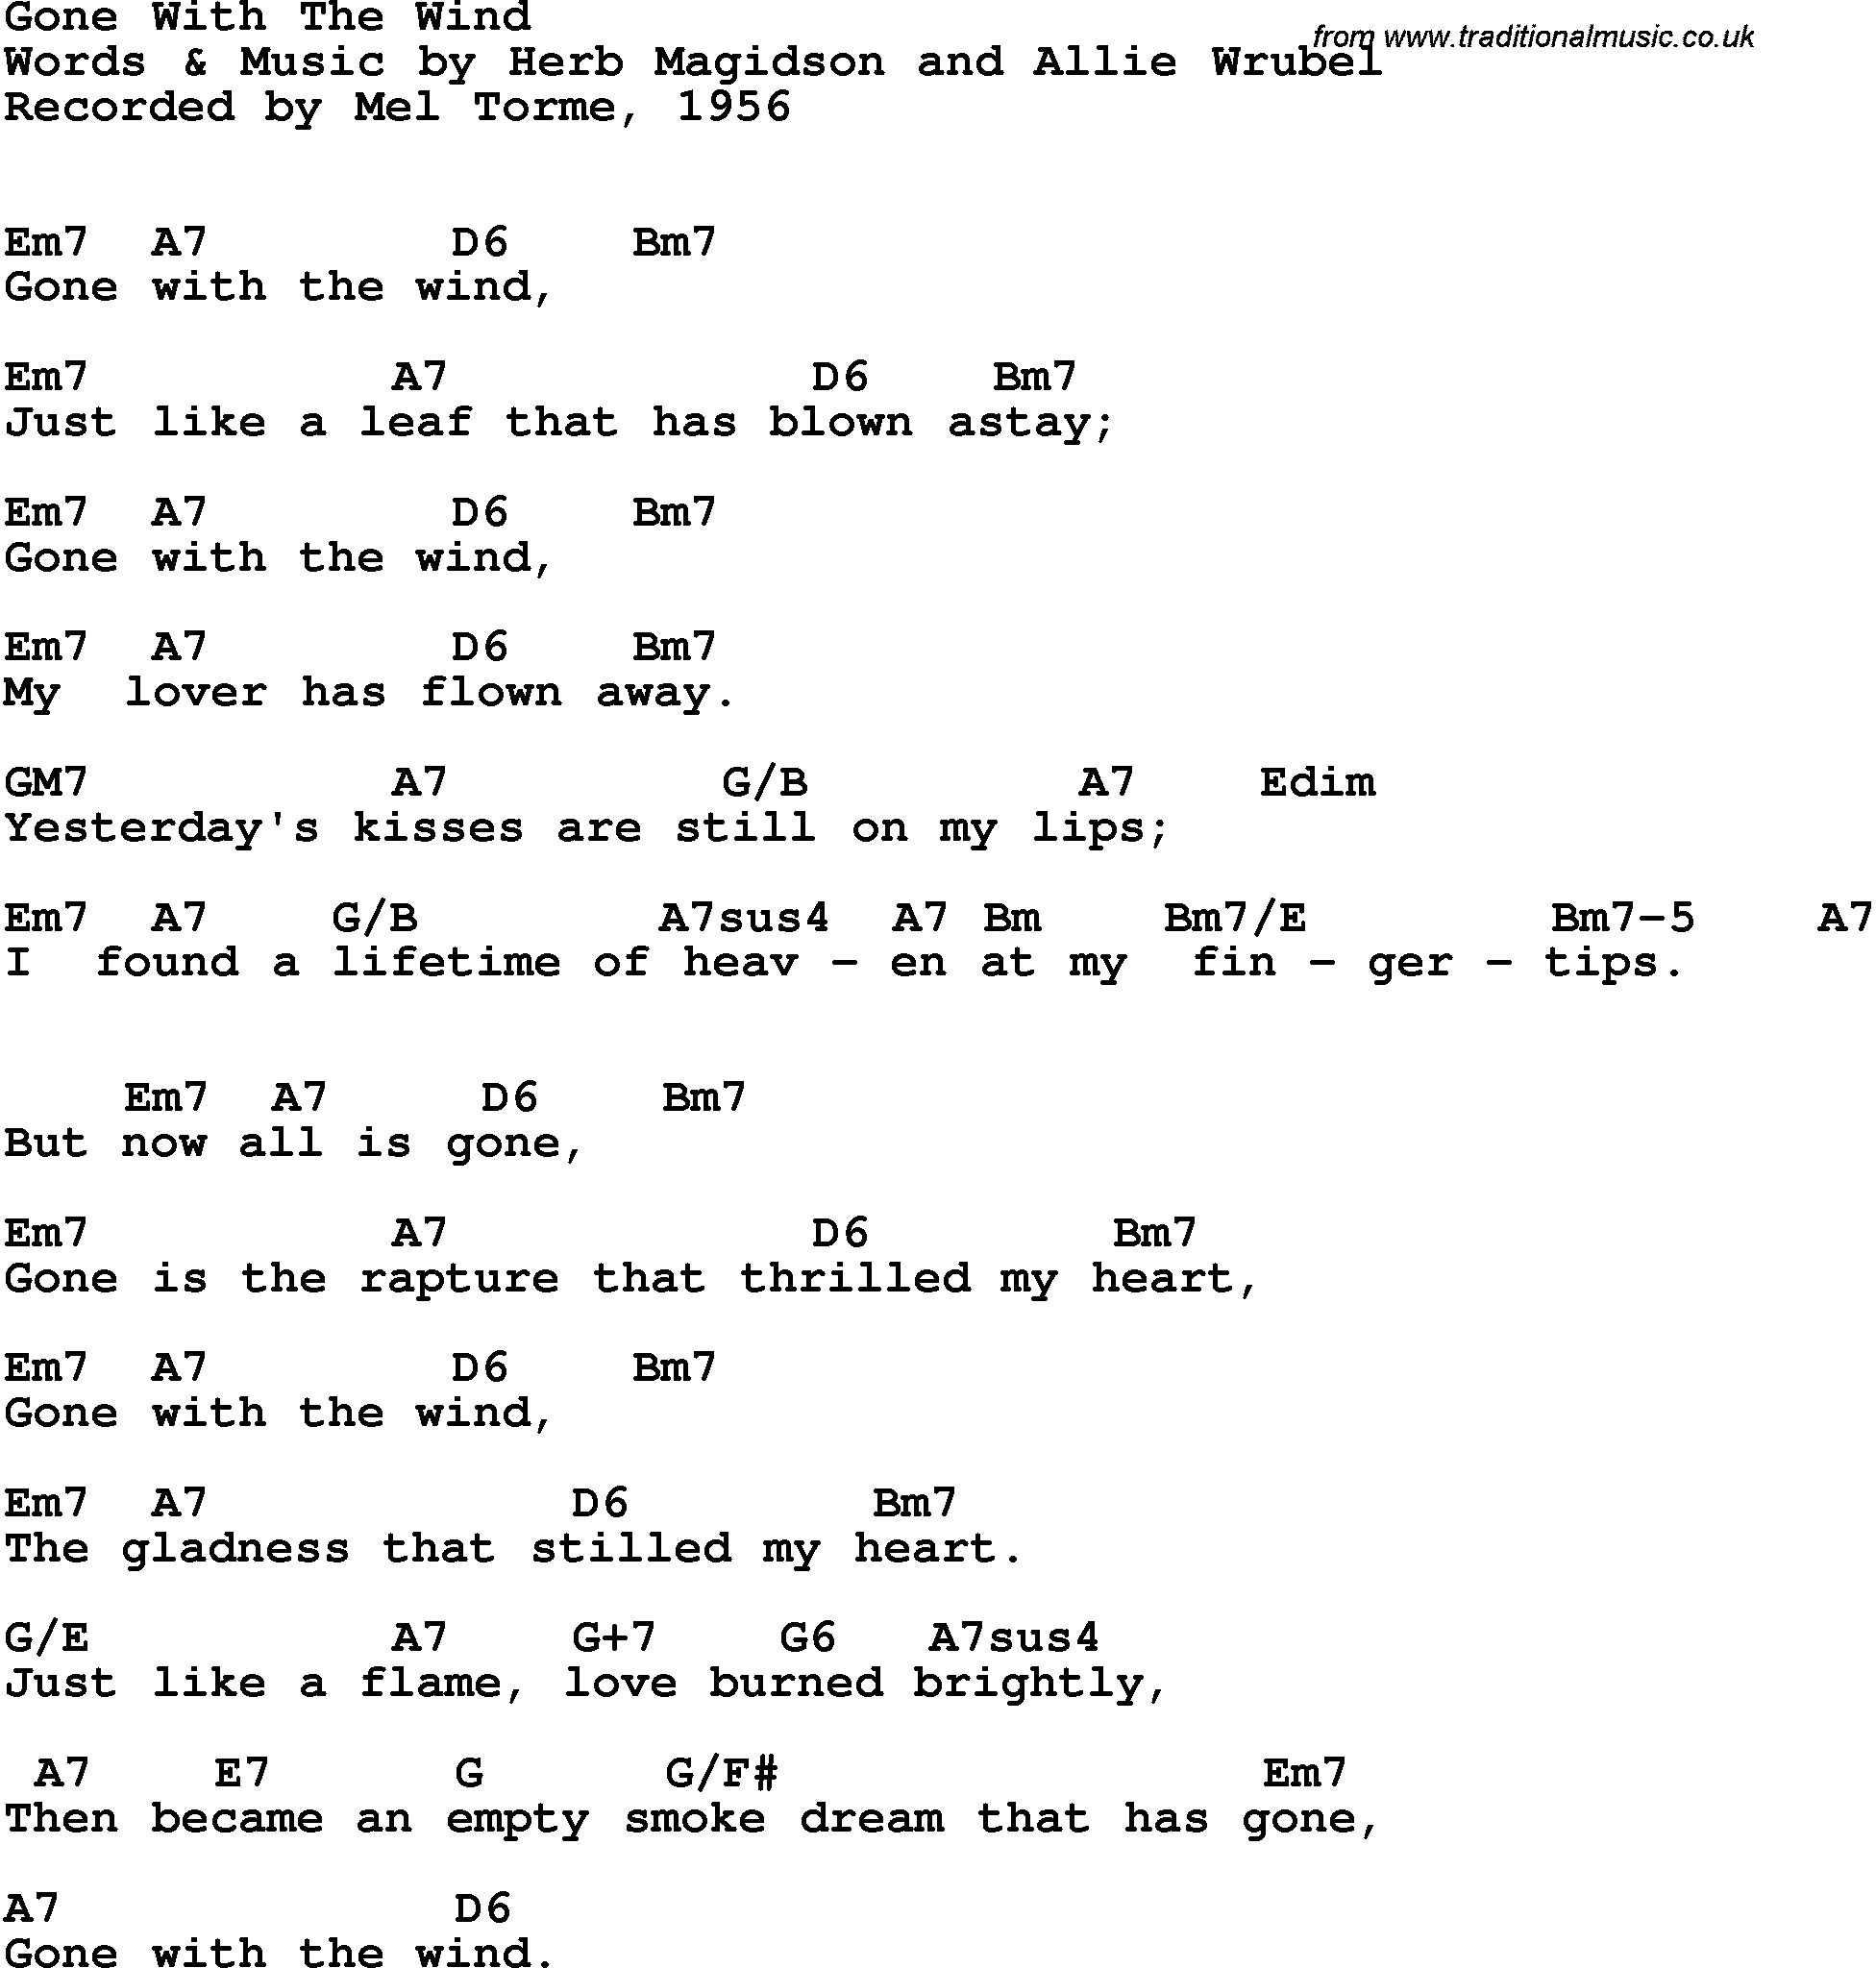 Song lyrics with guitar chords for gone with the wind mel torme song lyrics with guitar chords for gone with the wind mel torme 1956 hexwebz Gallery